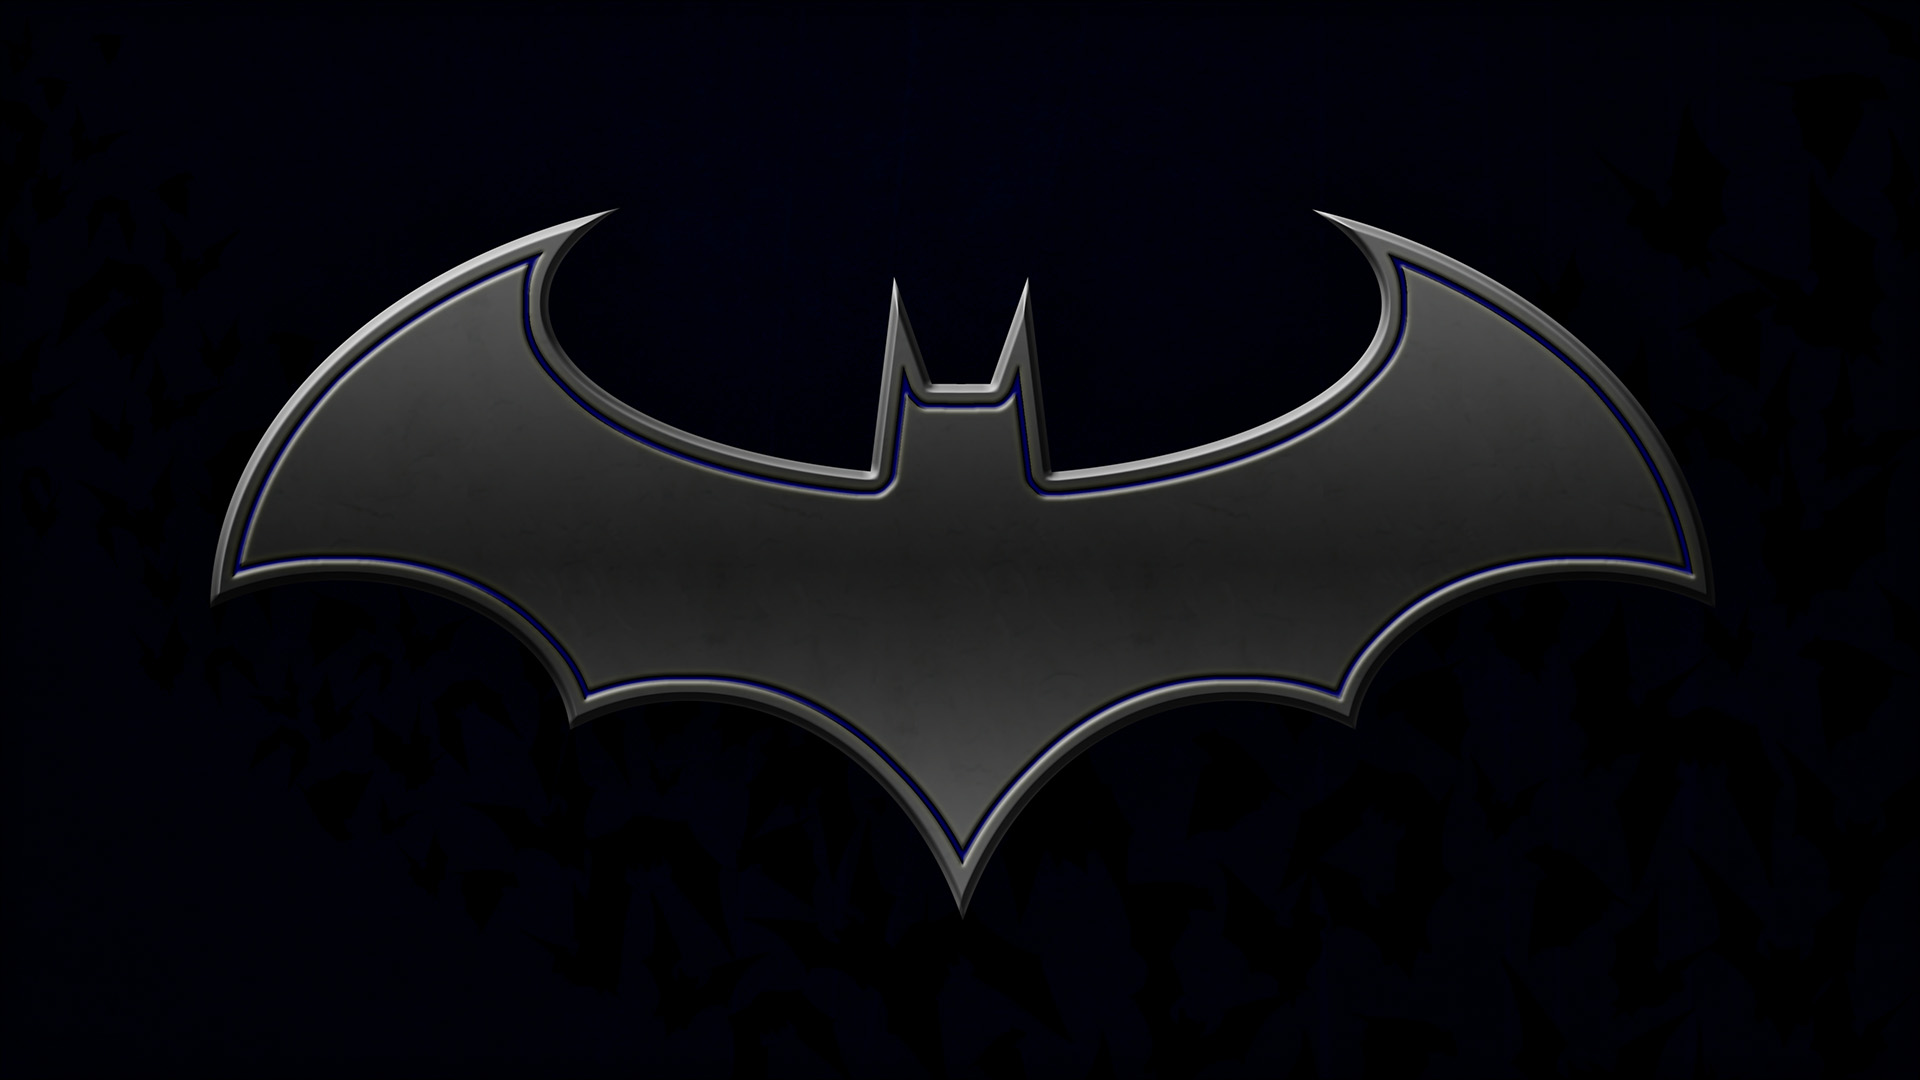 Batman Wallpaper Iphone Hd Batman wallpap 1920x1080